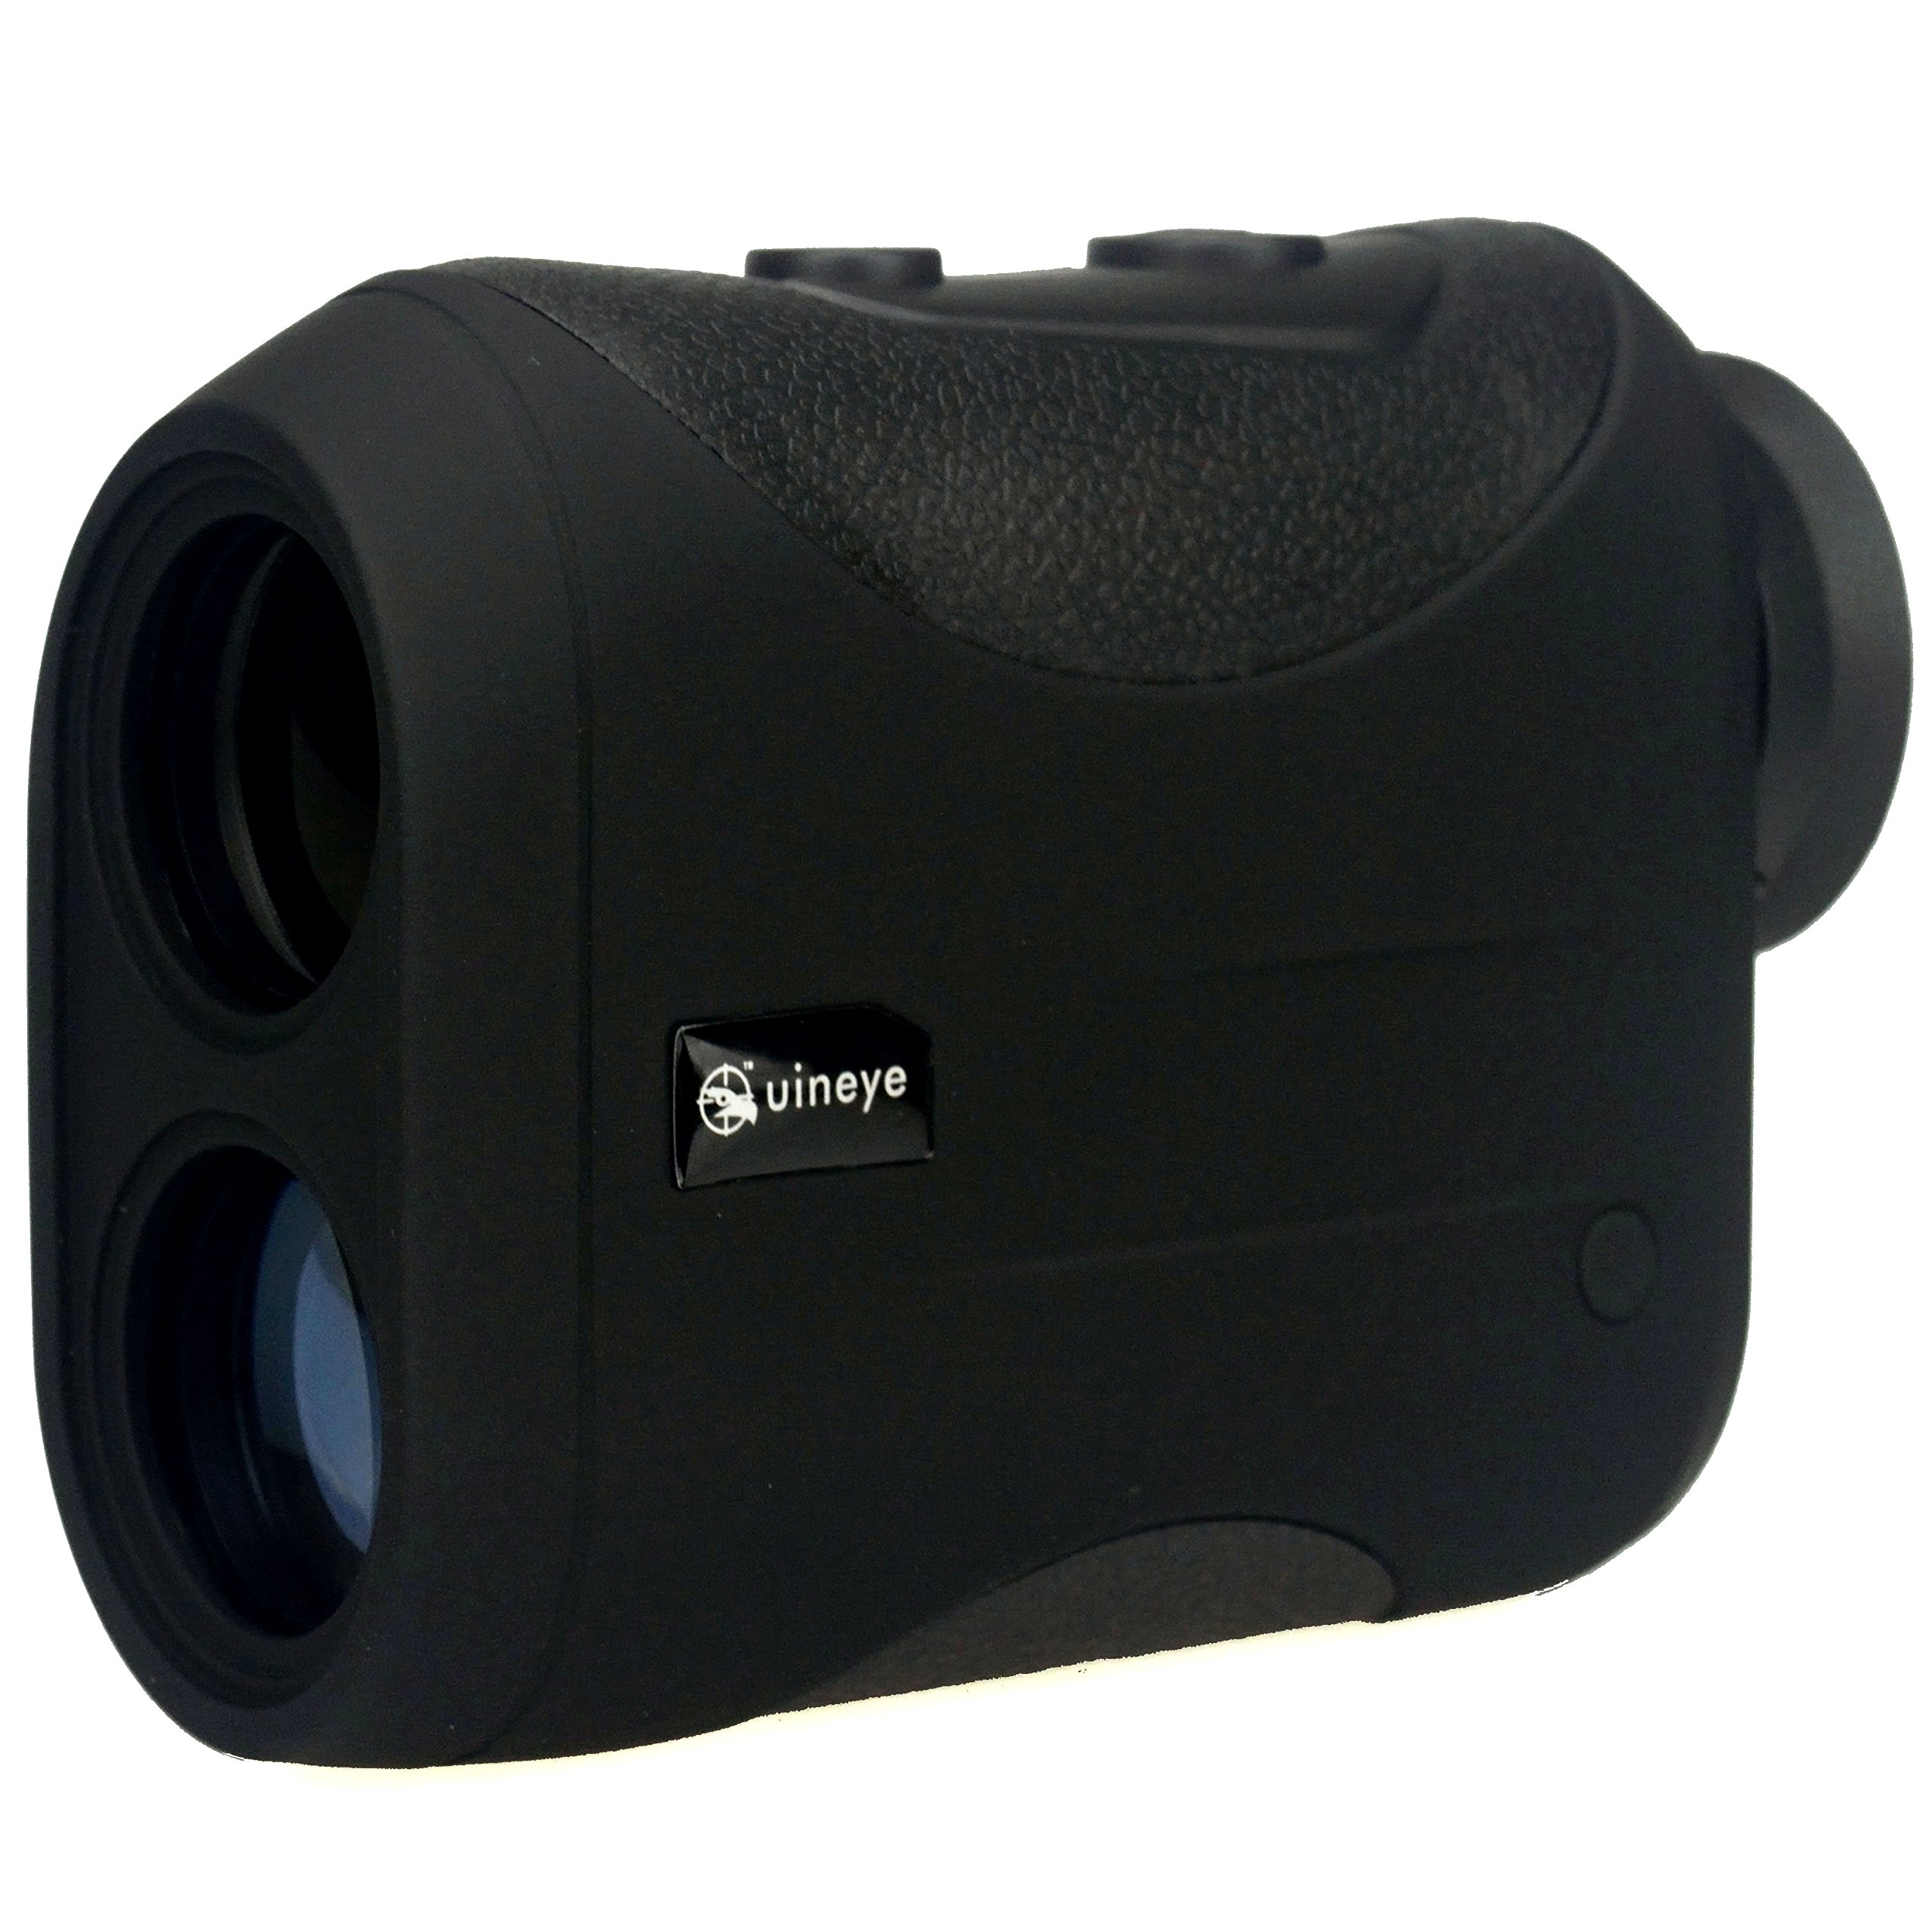 Golf Rangefinder - Range : 5-1312 Yards, +/- 0.33 Yard Accuracy, Laser Rangefinder with Height, Angle, Horizontal Distance Measurement Perfect for Hunting, Golf, Engineering Survey (Black) by Uineye